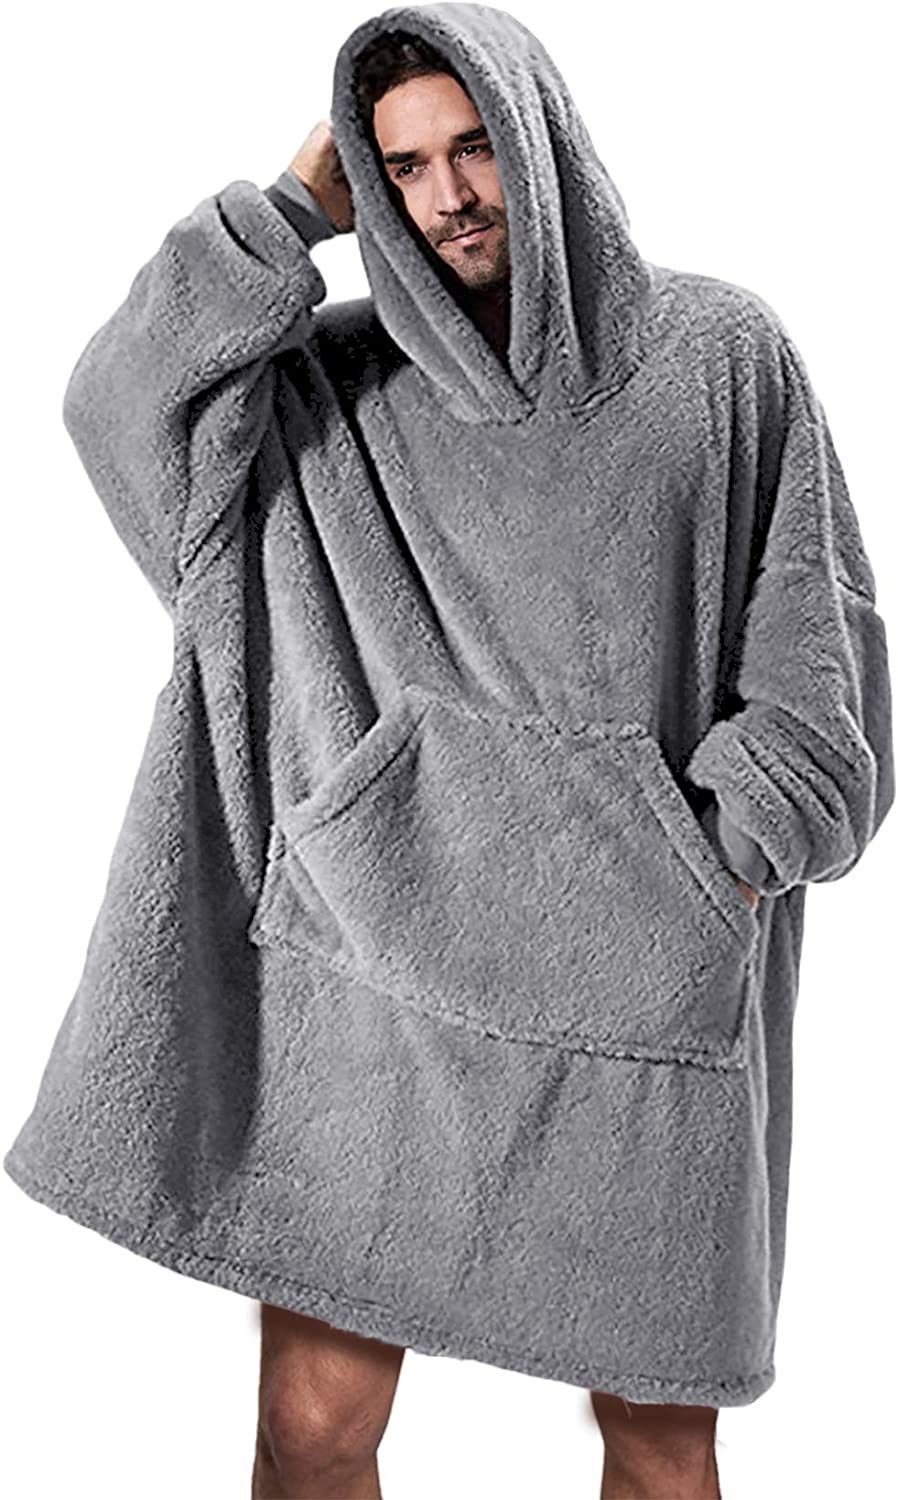 Makkrom Wearable Blanket Sweatshirt for Women and Men Cozy Big Blanket Hoodie Thick Sherpa Blanket with Sleeves and Giant Pocket Medium, Army Green